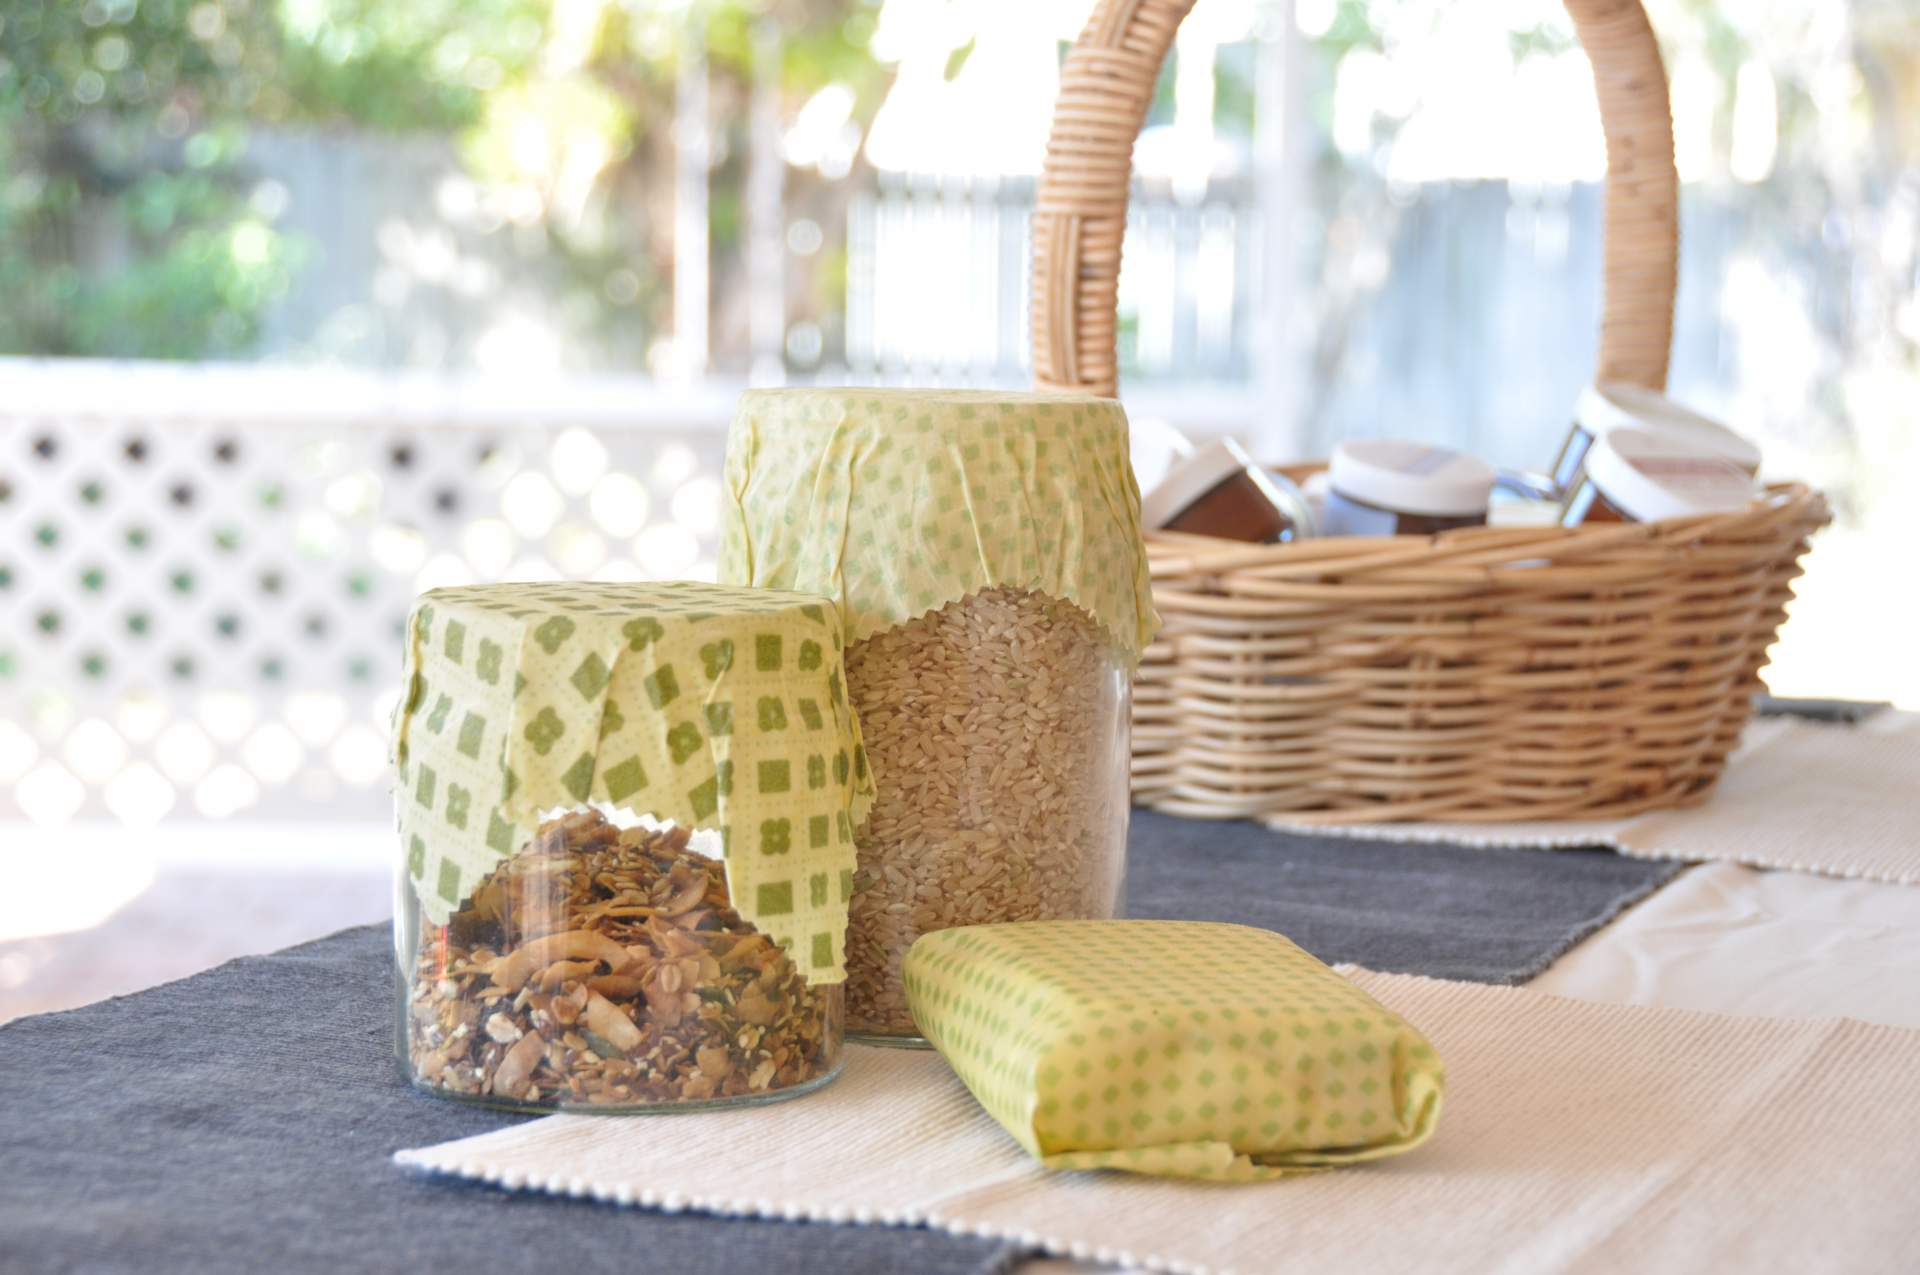 How to Make Re-useable Beeswax Wraps to Decrease Waste